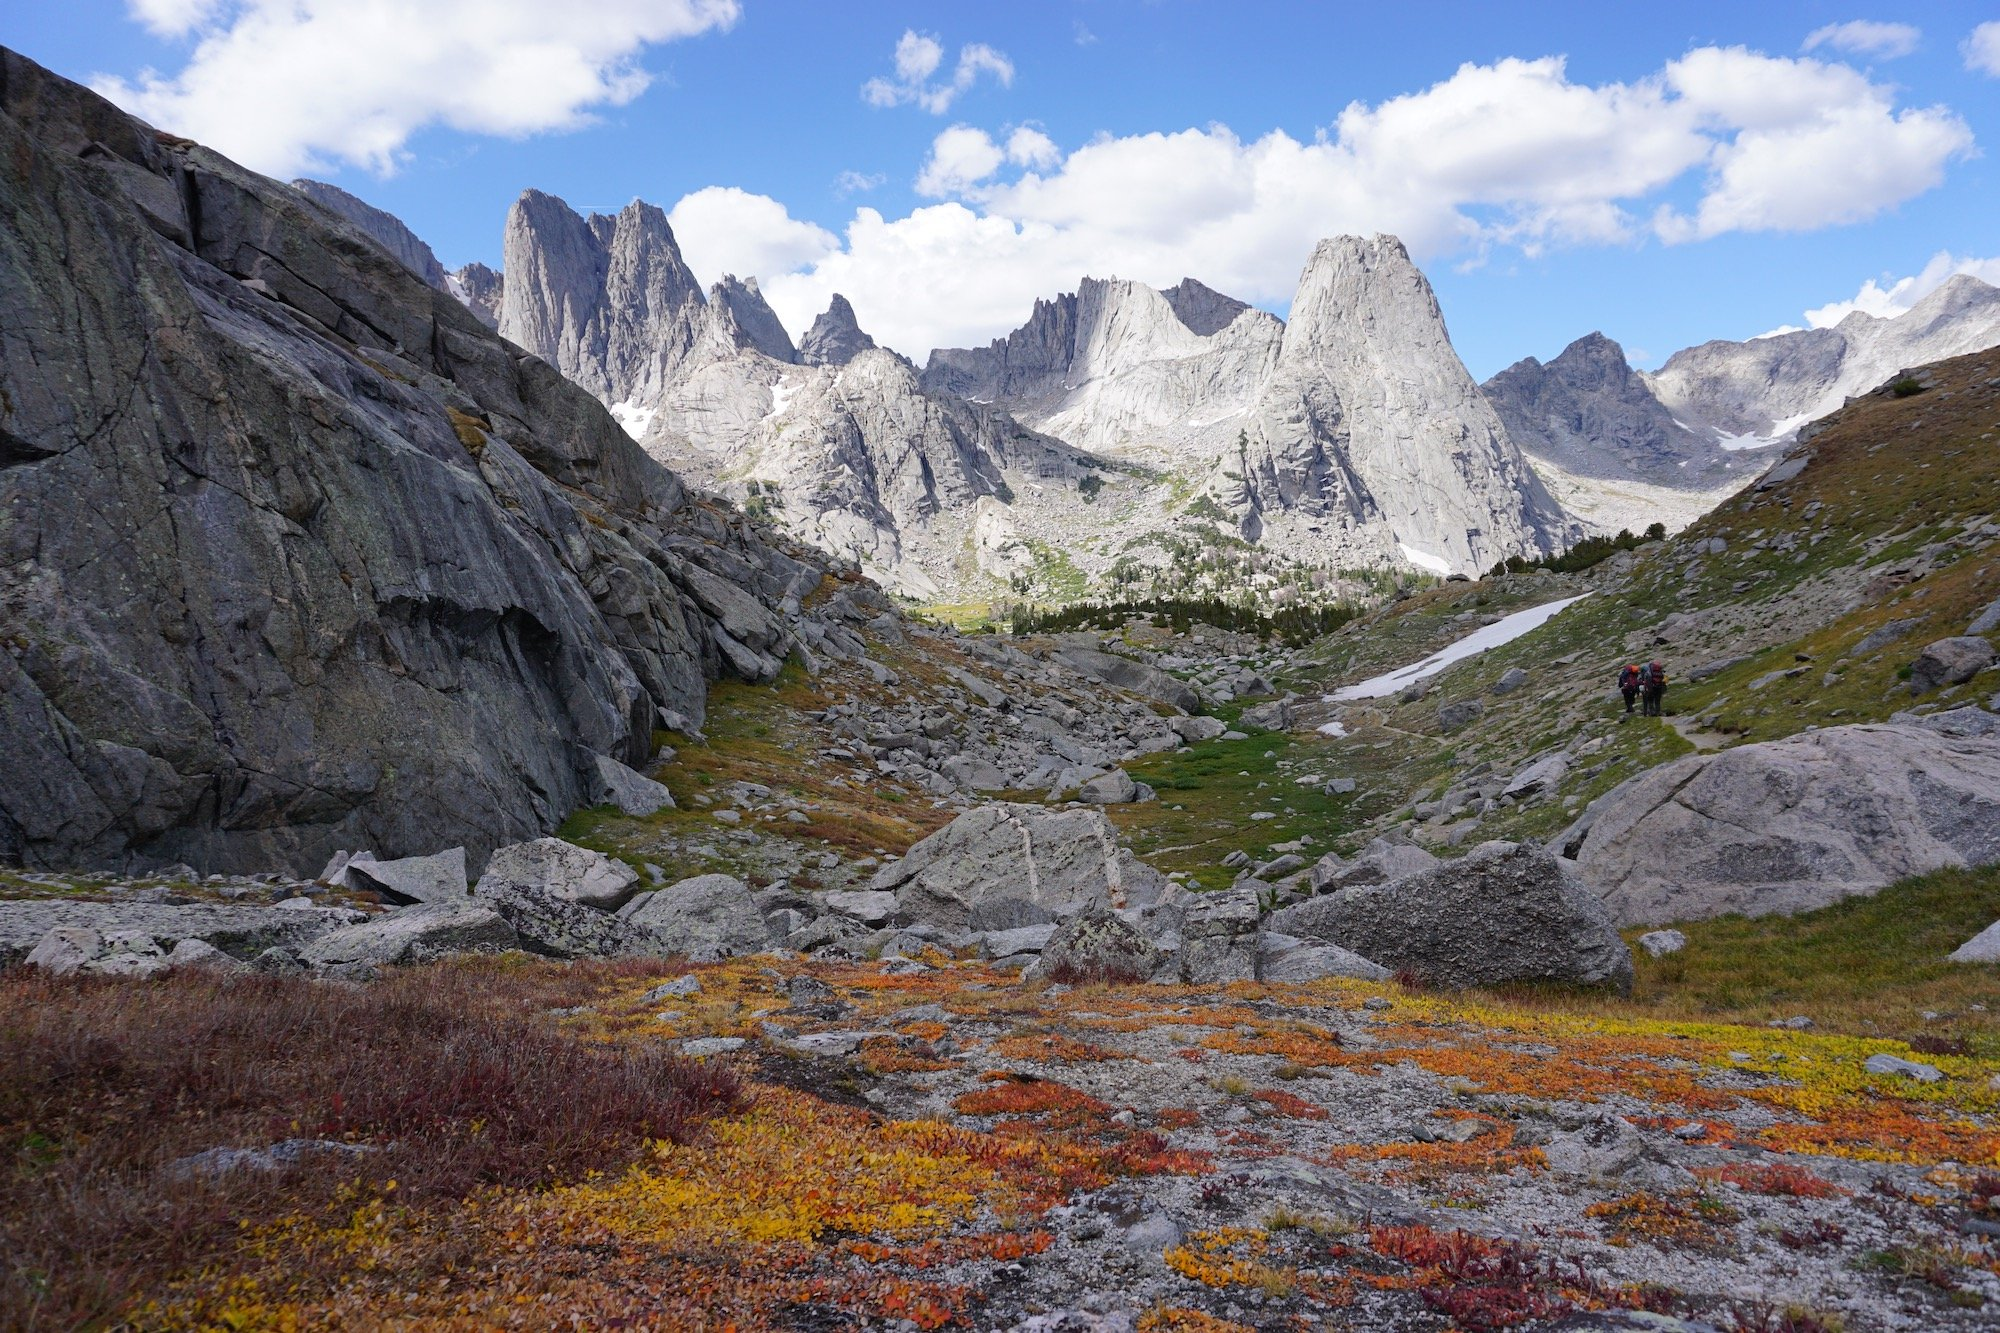 Rocky peaks in the Cirque of the Towers in Wyoming's Wind River Range